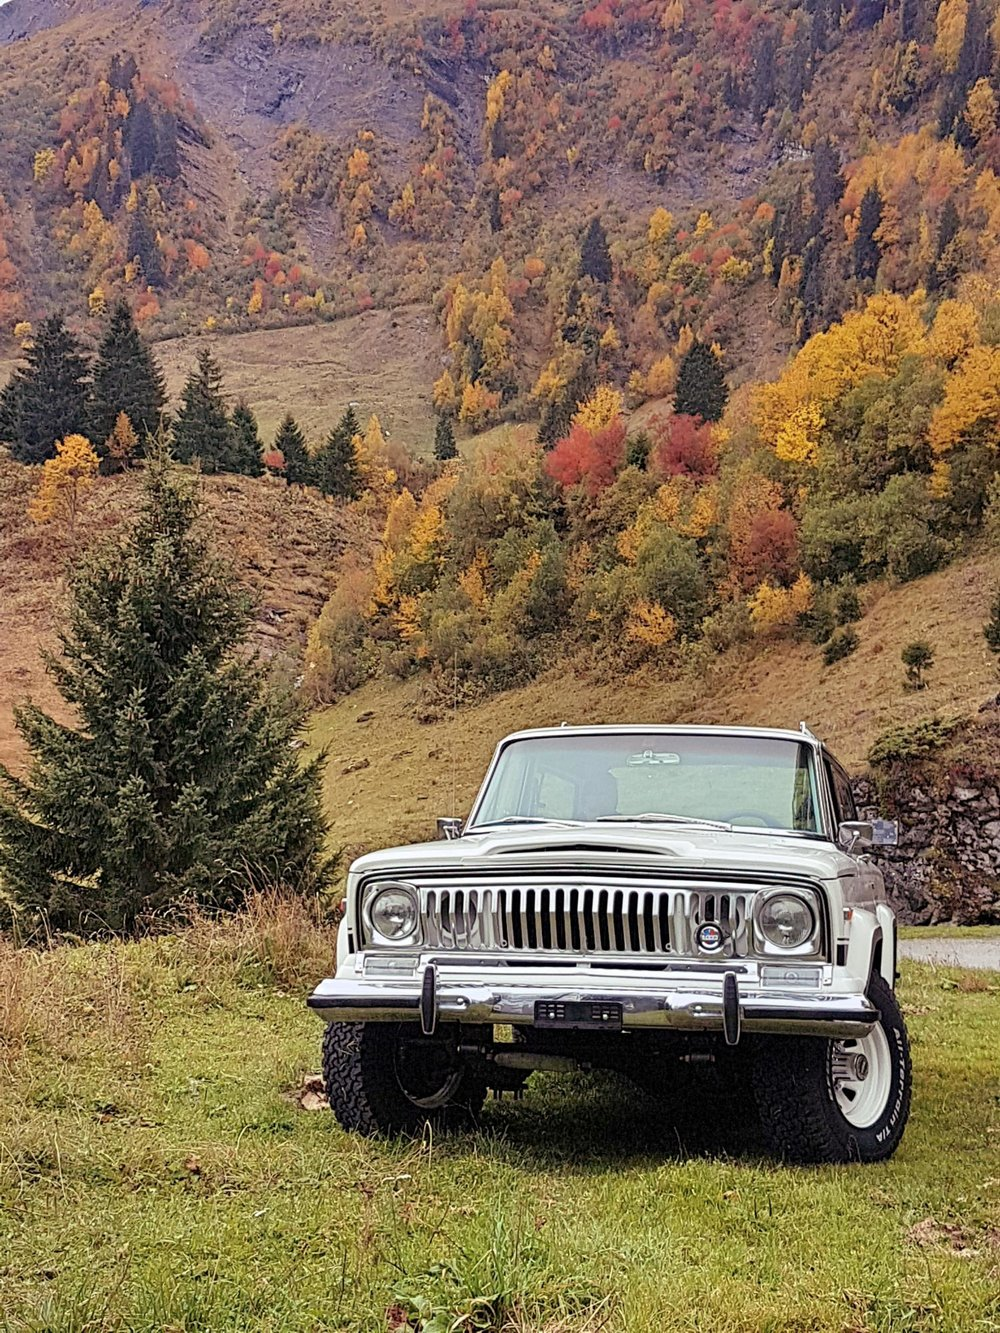 jeep-cherokee-chief-1978-shooting-morgins-switzerland-30.jpg